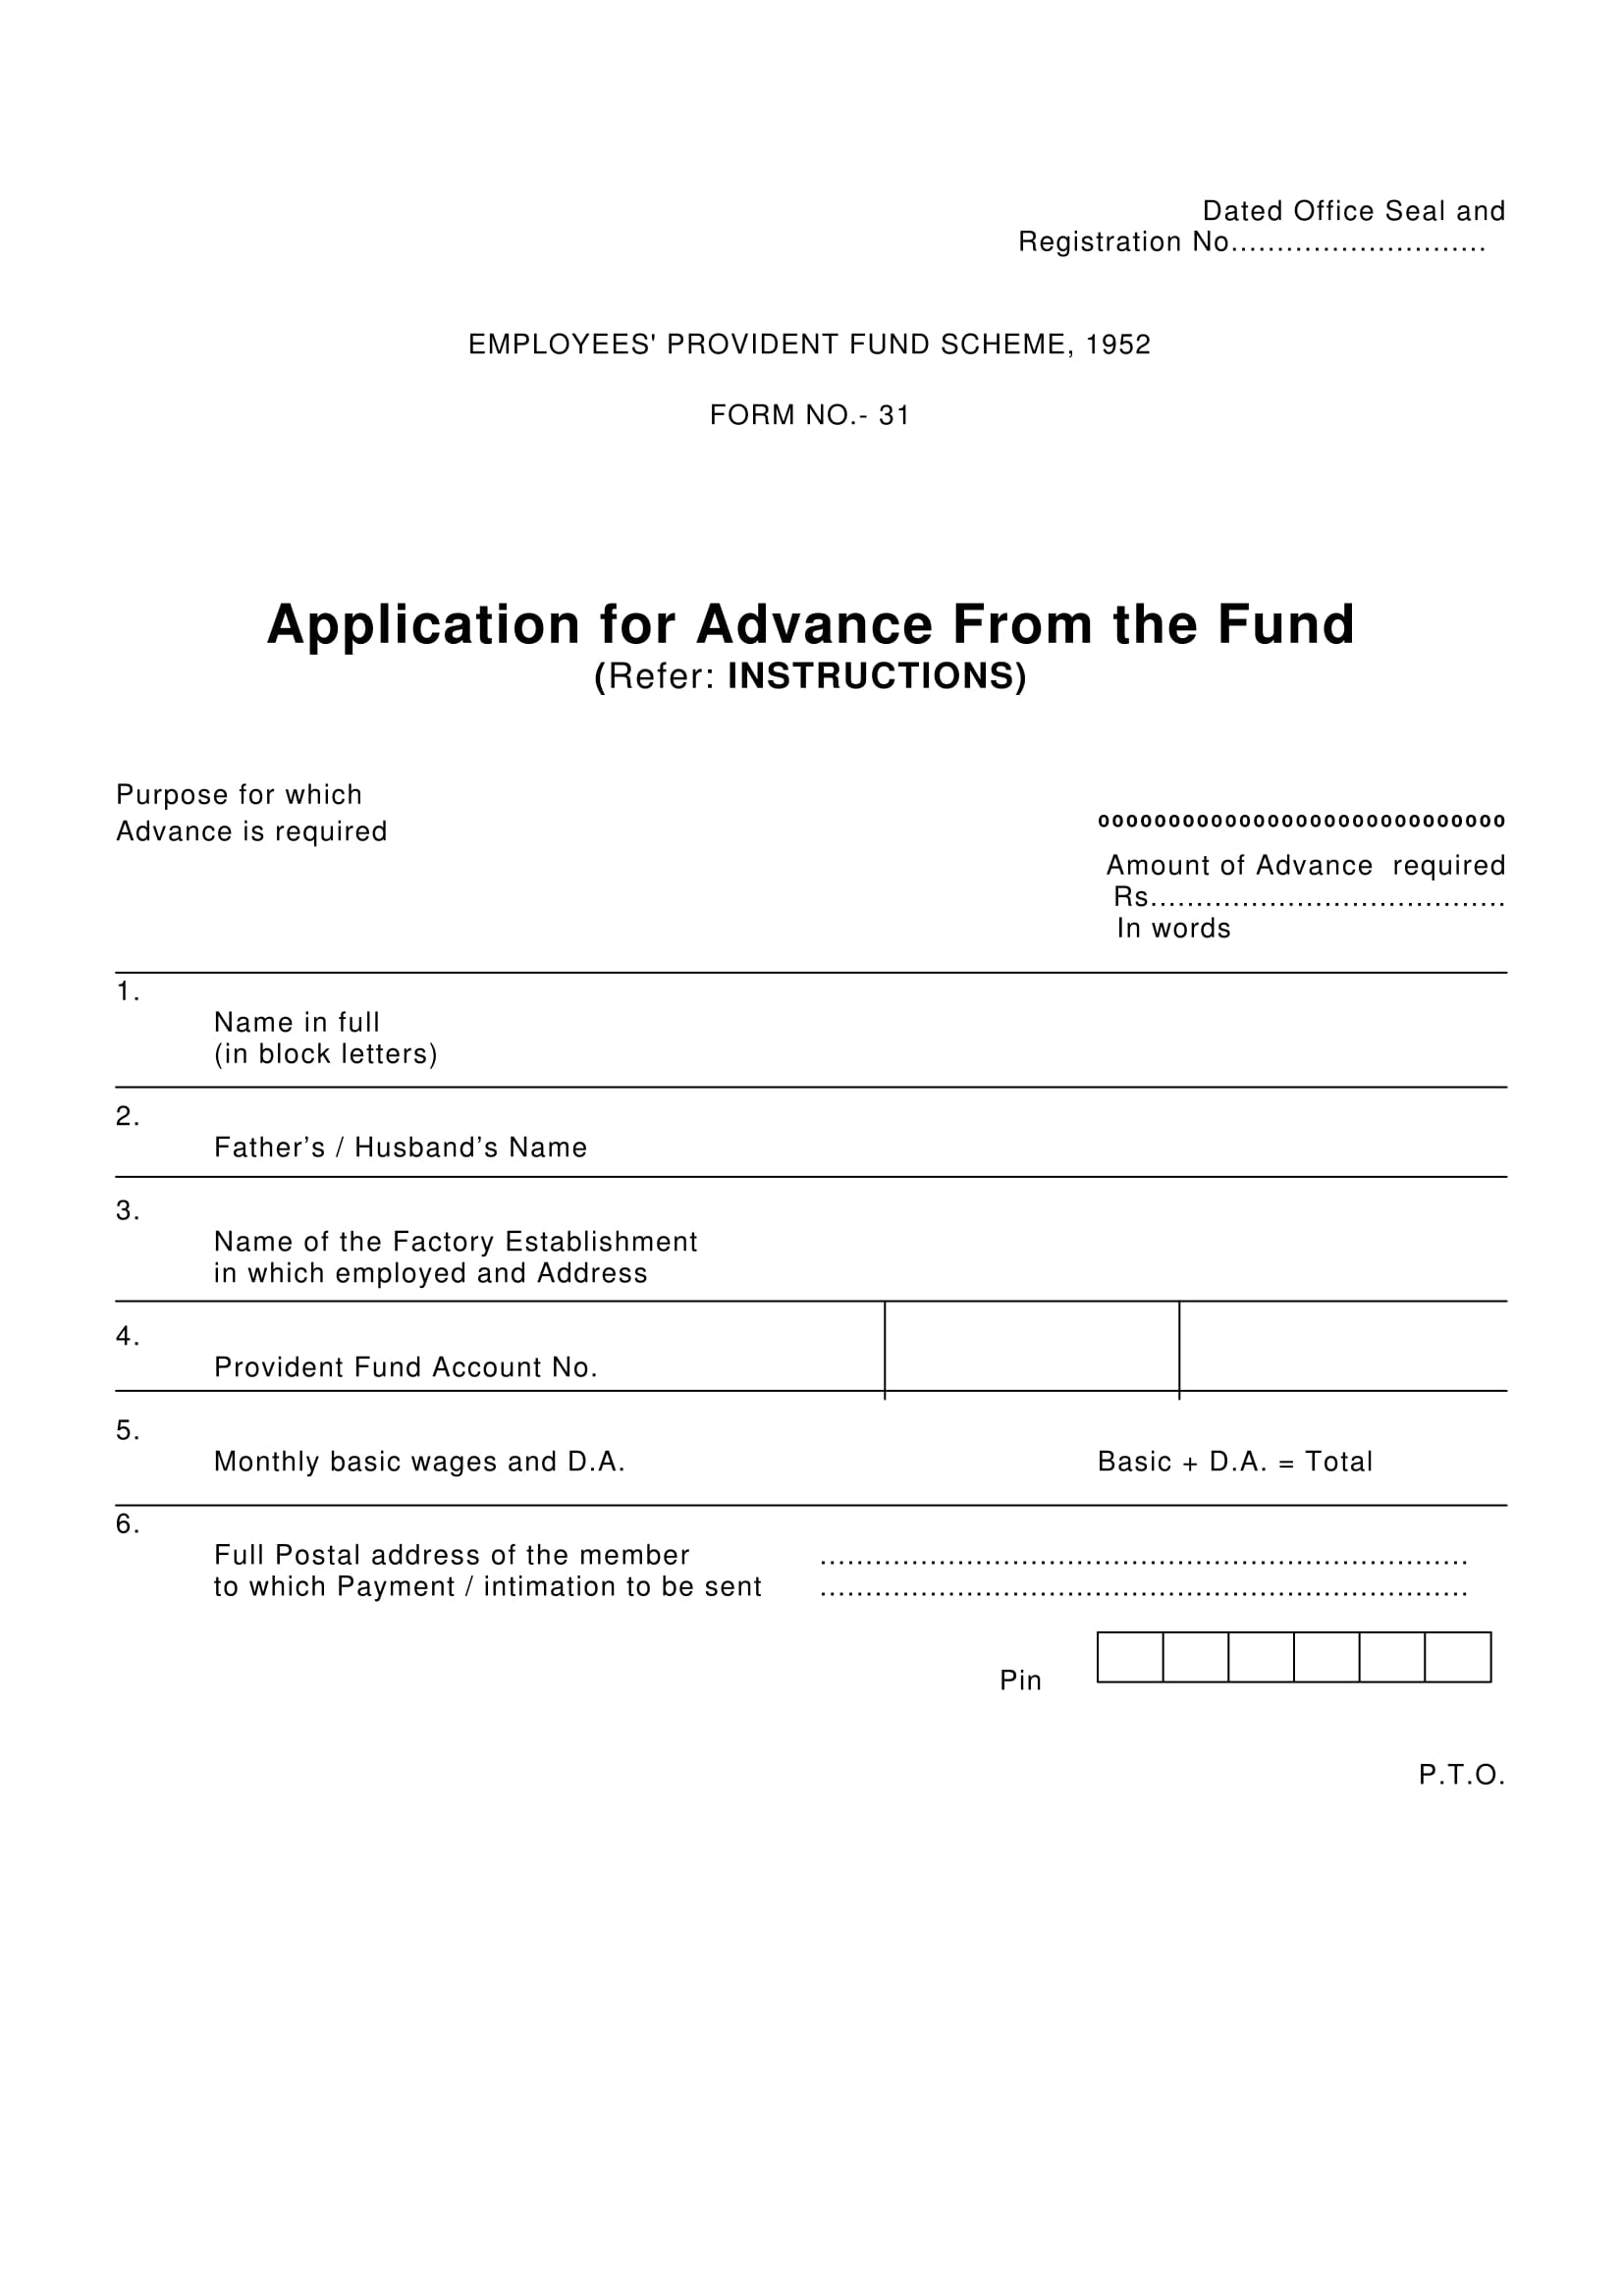 application for advance for fund 1